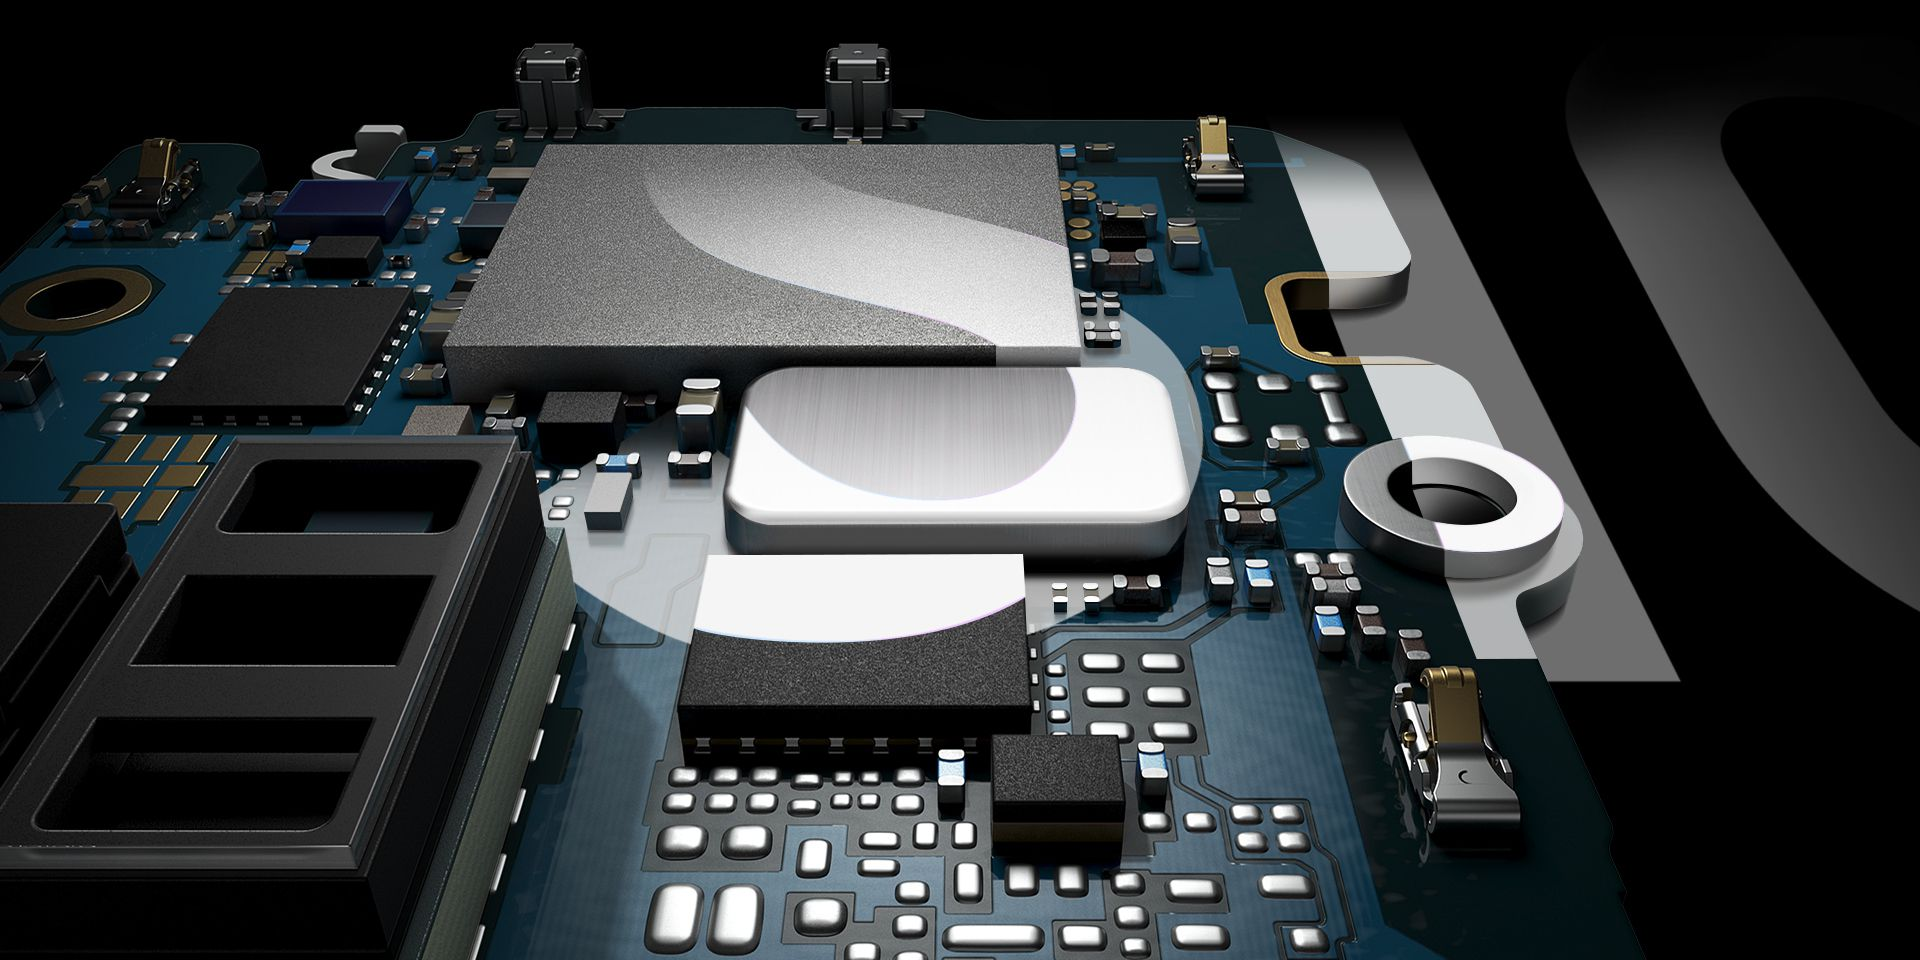 Samsung Galaxy S10 With Next Generation Hardware - Abstract Image of Computer Components